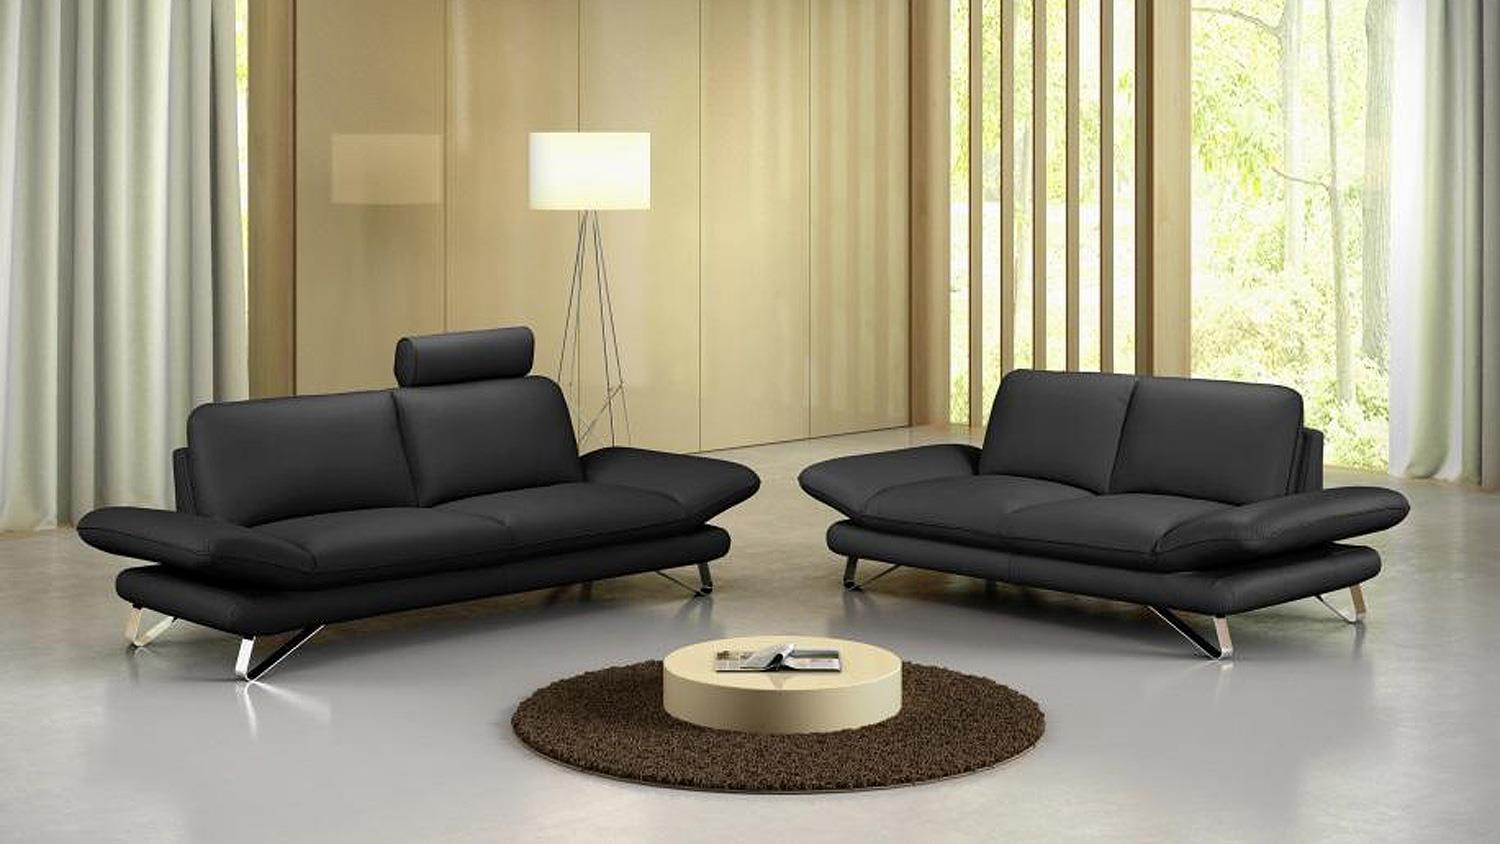 sofa 2 5 sitzer taifuna einzelsofa polsterm bel in schwarz. Black Bedroom Furniture Sets. Home Design Ideas